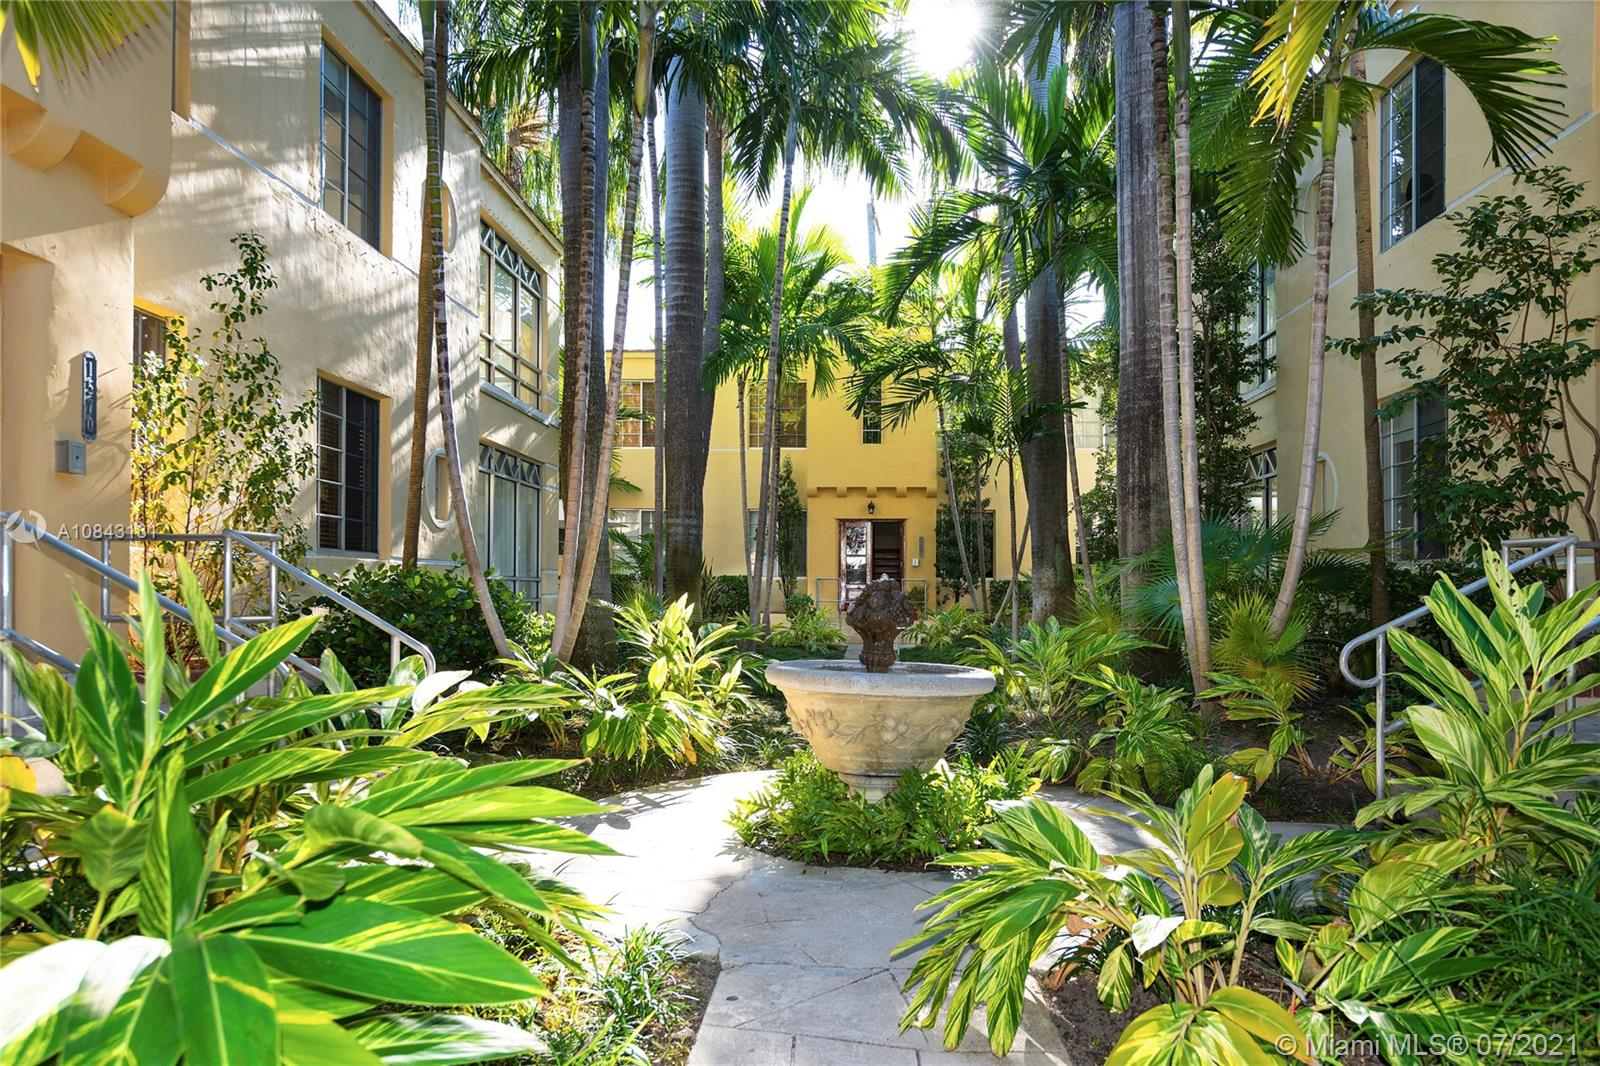 1570 Meridian Ave # 8, Miami Beach, Florida 33139, 1 Bedroom Bedrooms, ,2 BathroomsBathrooms,Residential,For Sale,1570 Meridian Ave # 8,A10843131